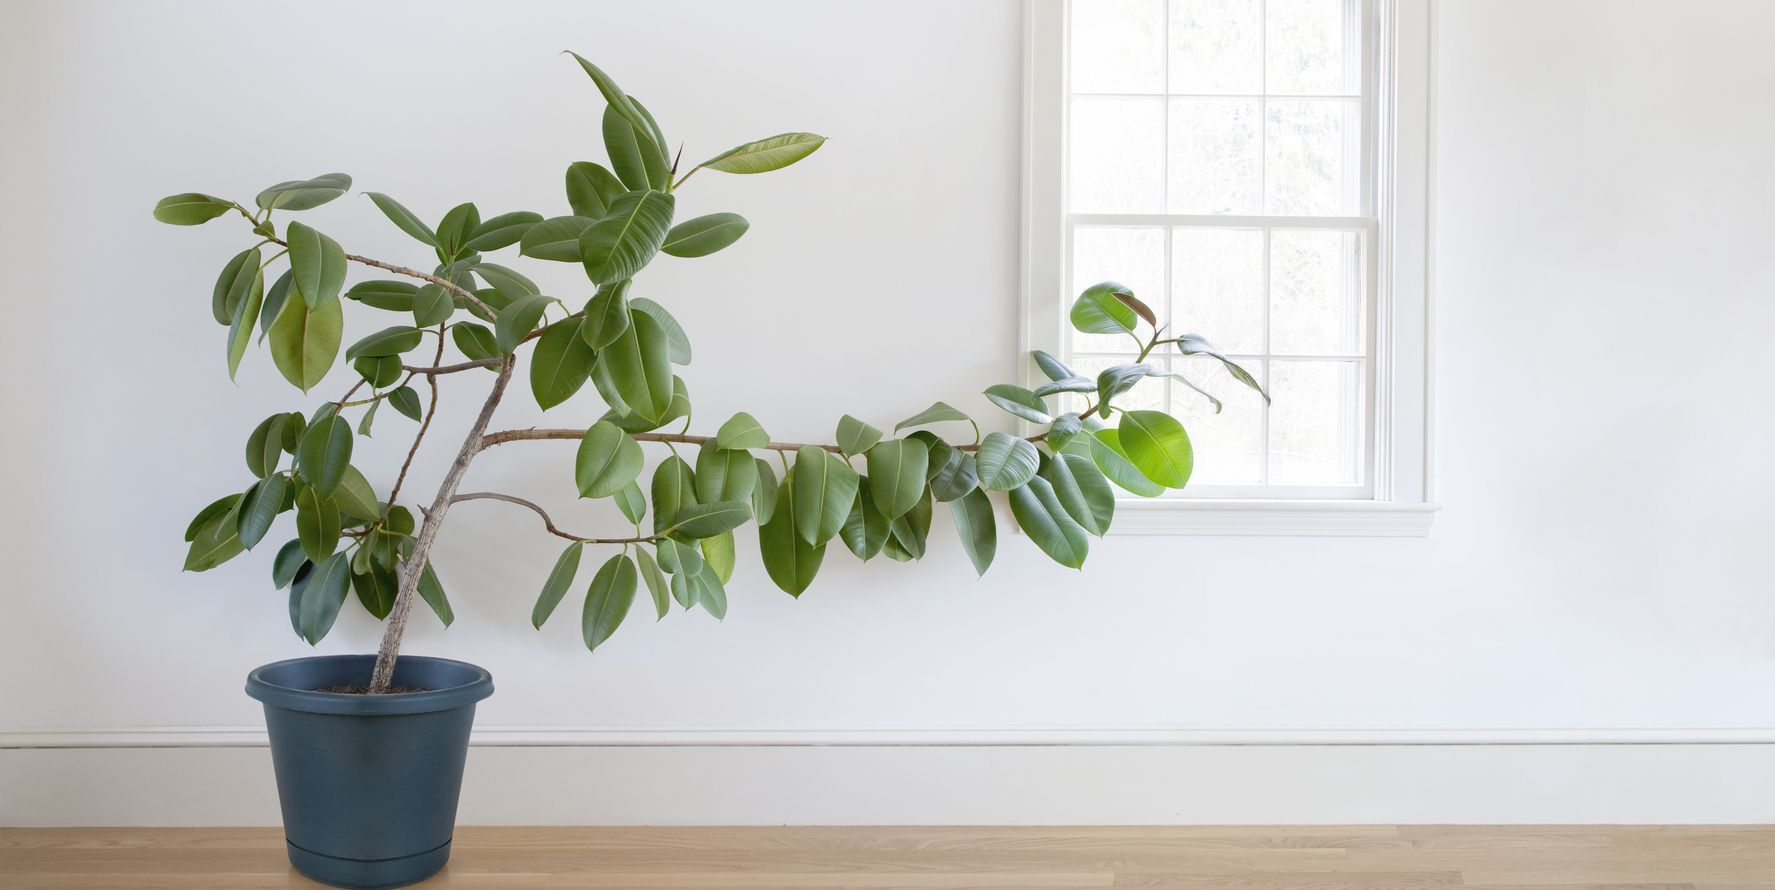 Beat the heatwave – these 5 houseplants will actually keep your home cool